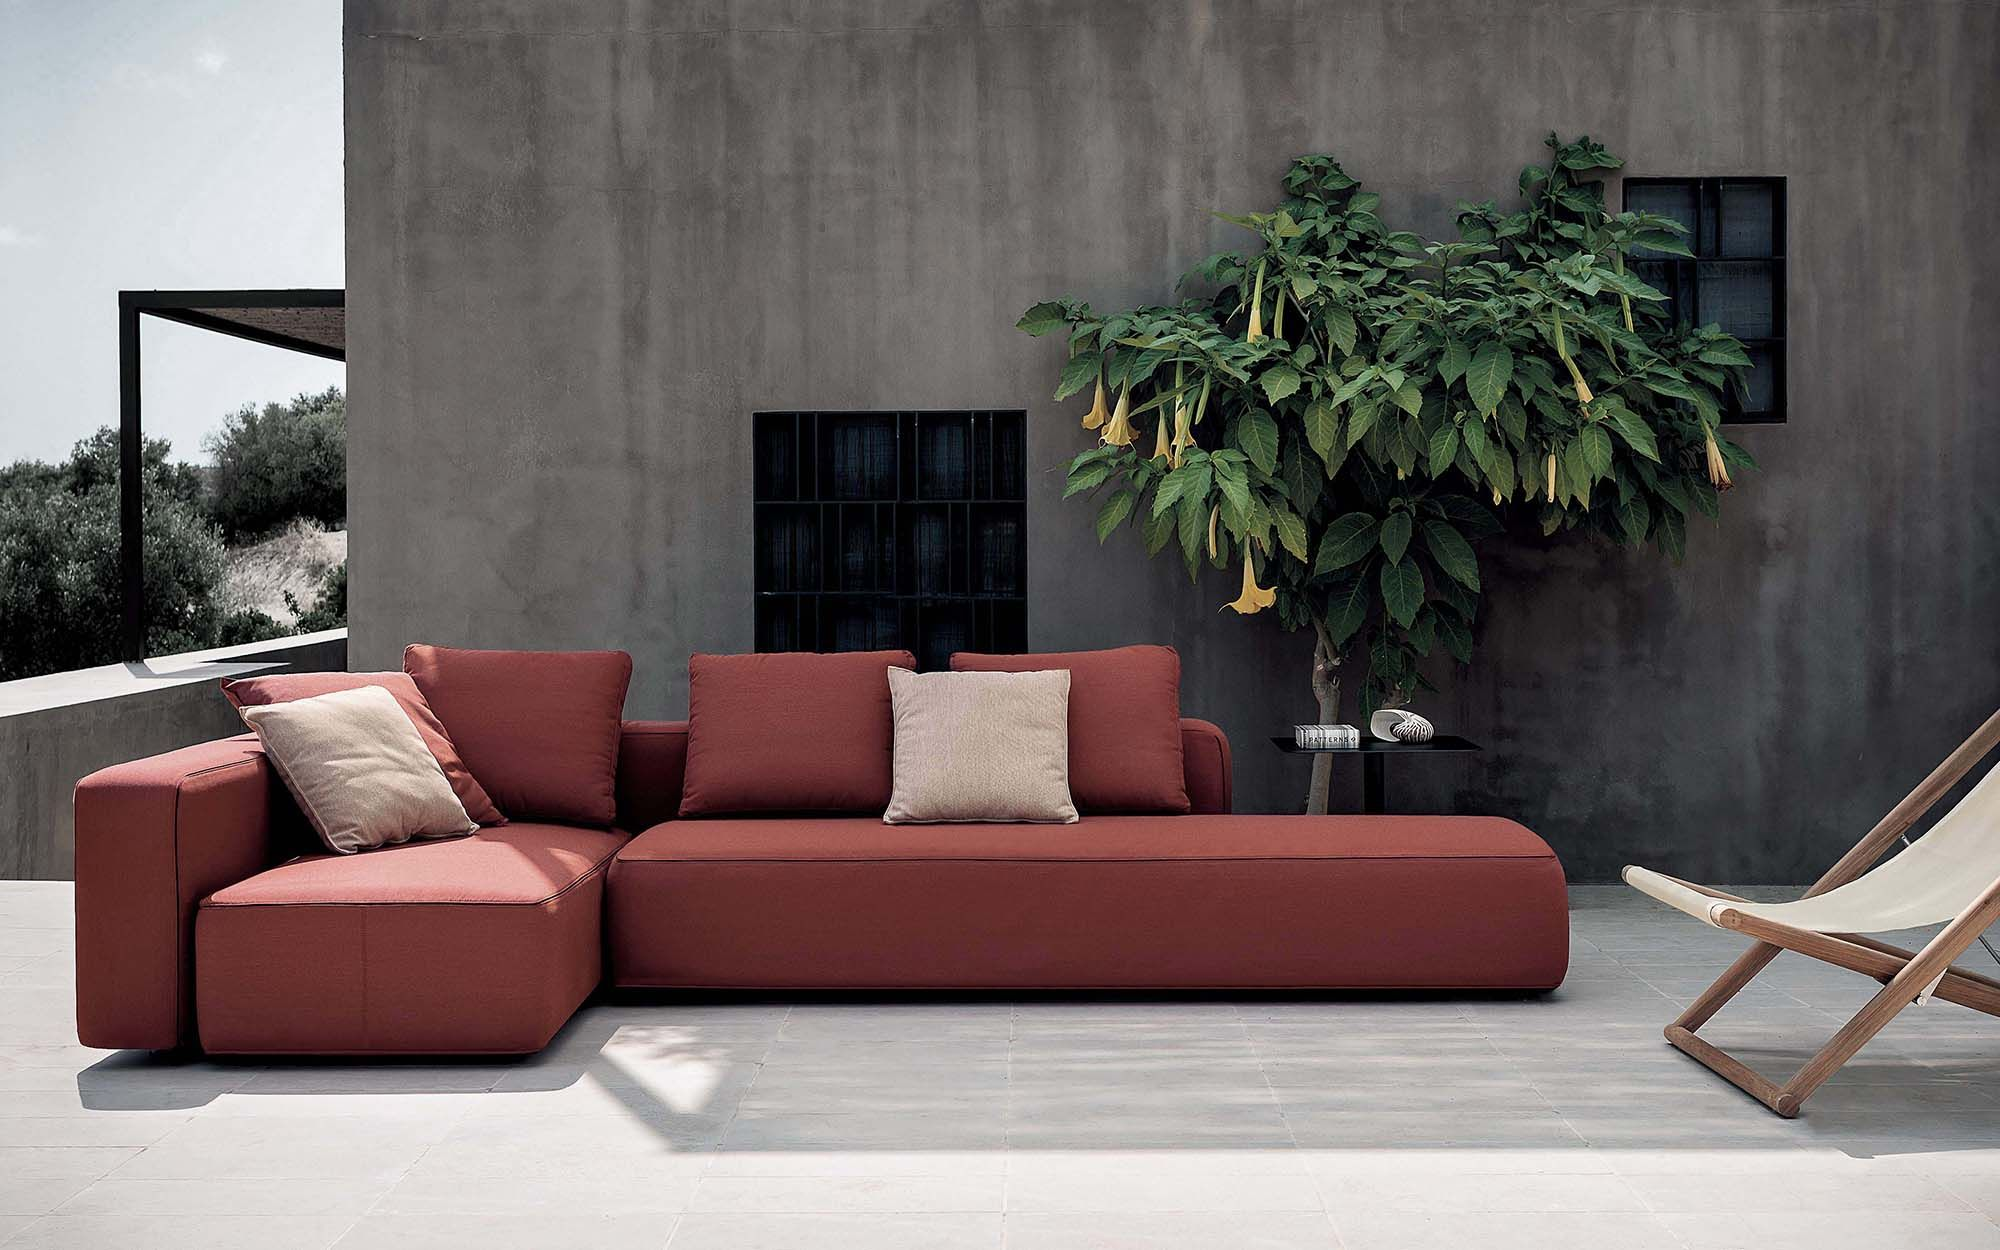 INTRODUCING RODA | Outdoor Furniture